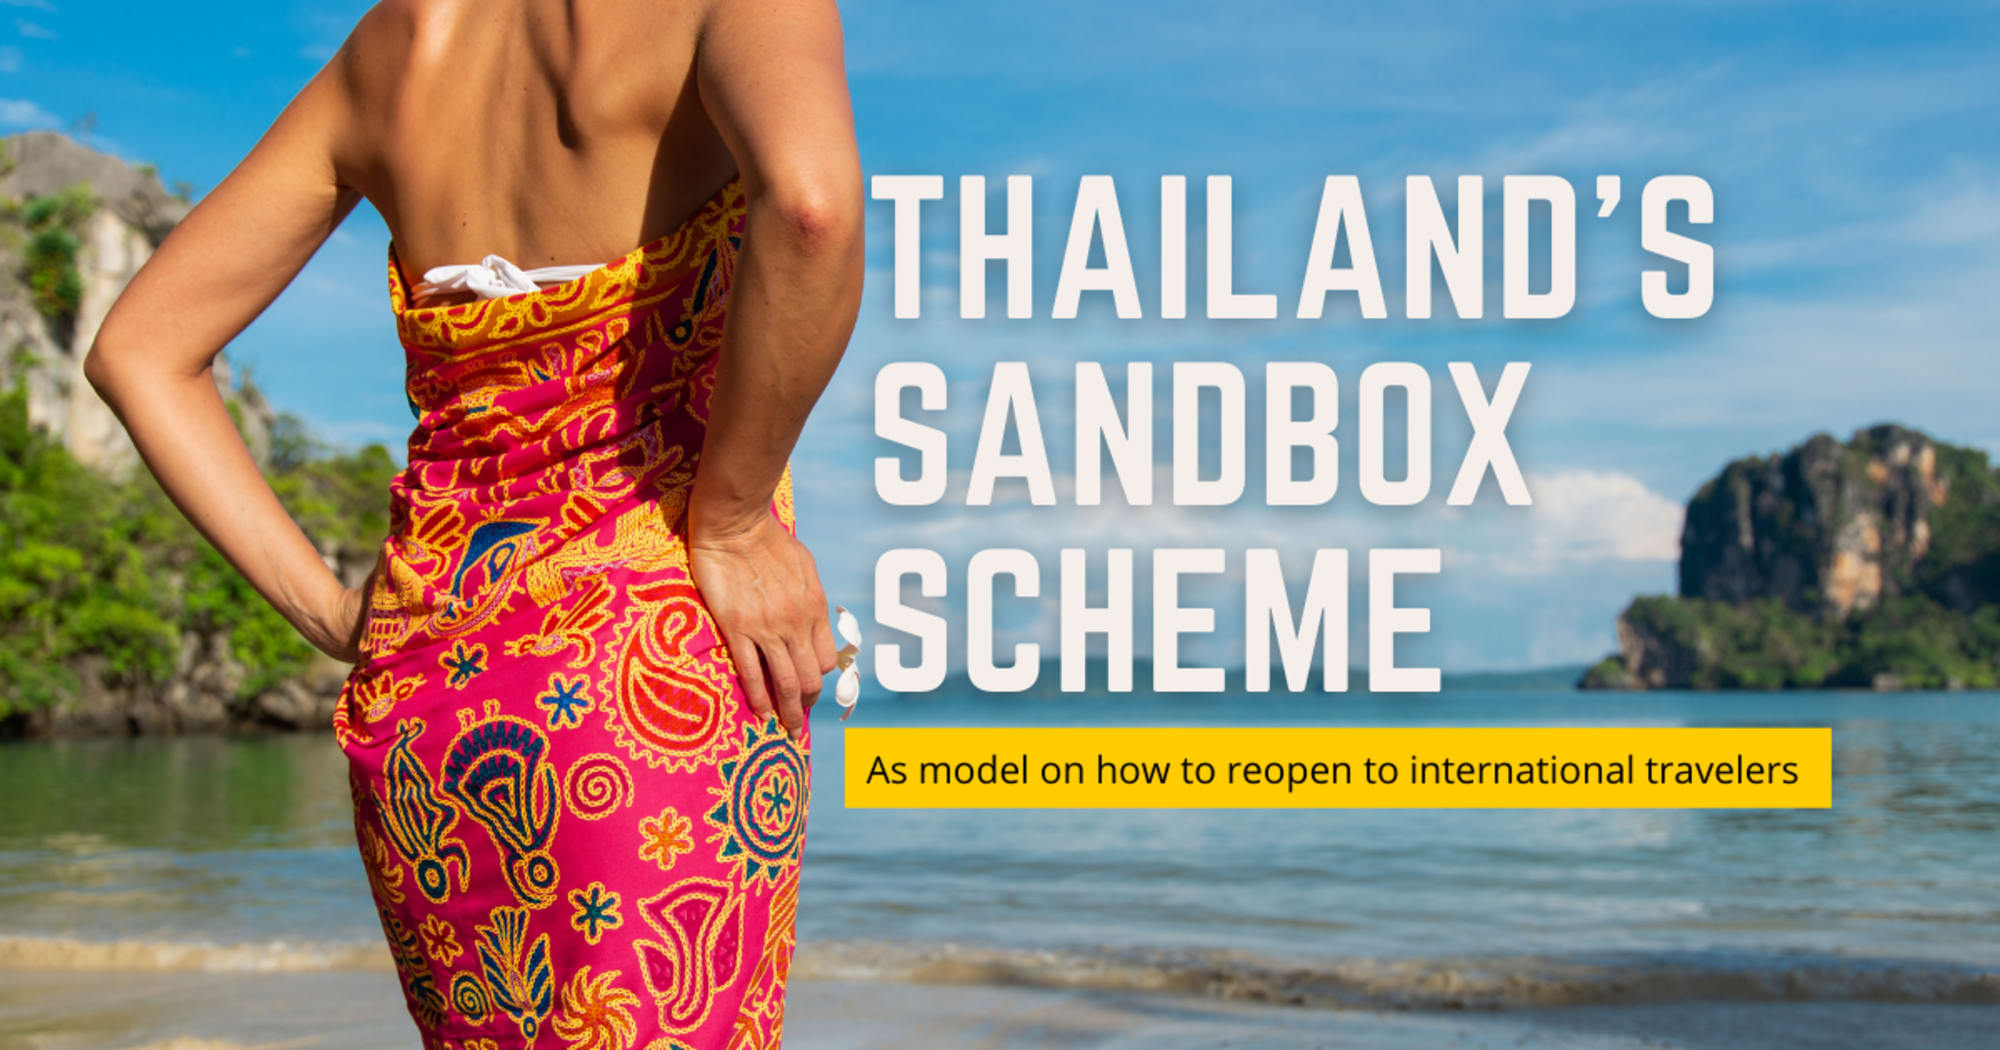 DOT is watching Thailand's sandbox scheme as a model on how to reopen to international travelers